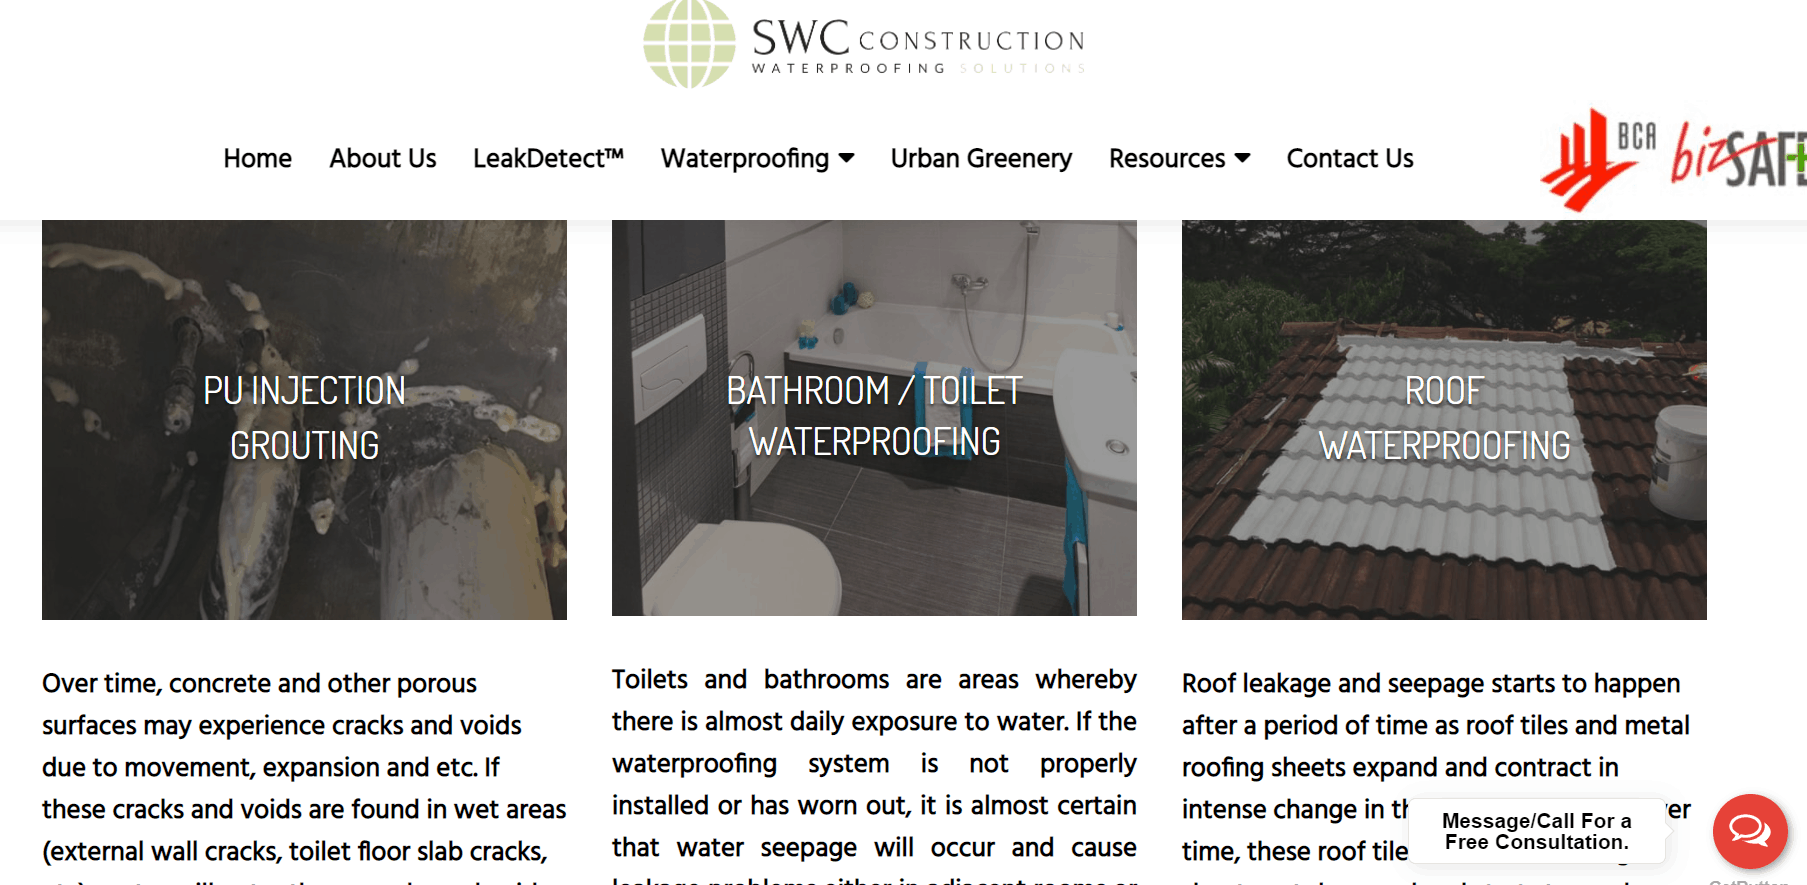 SWC Construction Waterproofing Singapore is 10 Best Waterproofing Contractors in Singapore, Waterproofing Company In Singapore With Prices, best Waterproofing Contractor Singapore, Waterproofing Contractor Singapore Specialist,  top and leading specialist waterproofing contractor in Singapore,